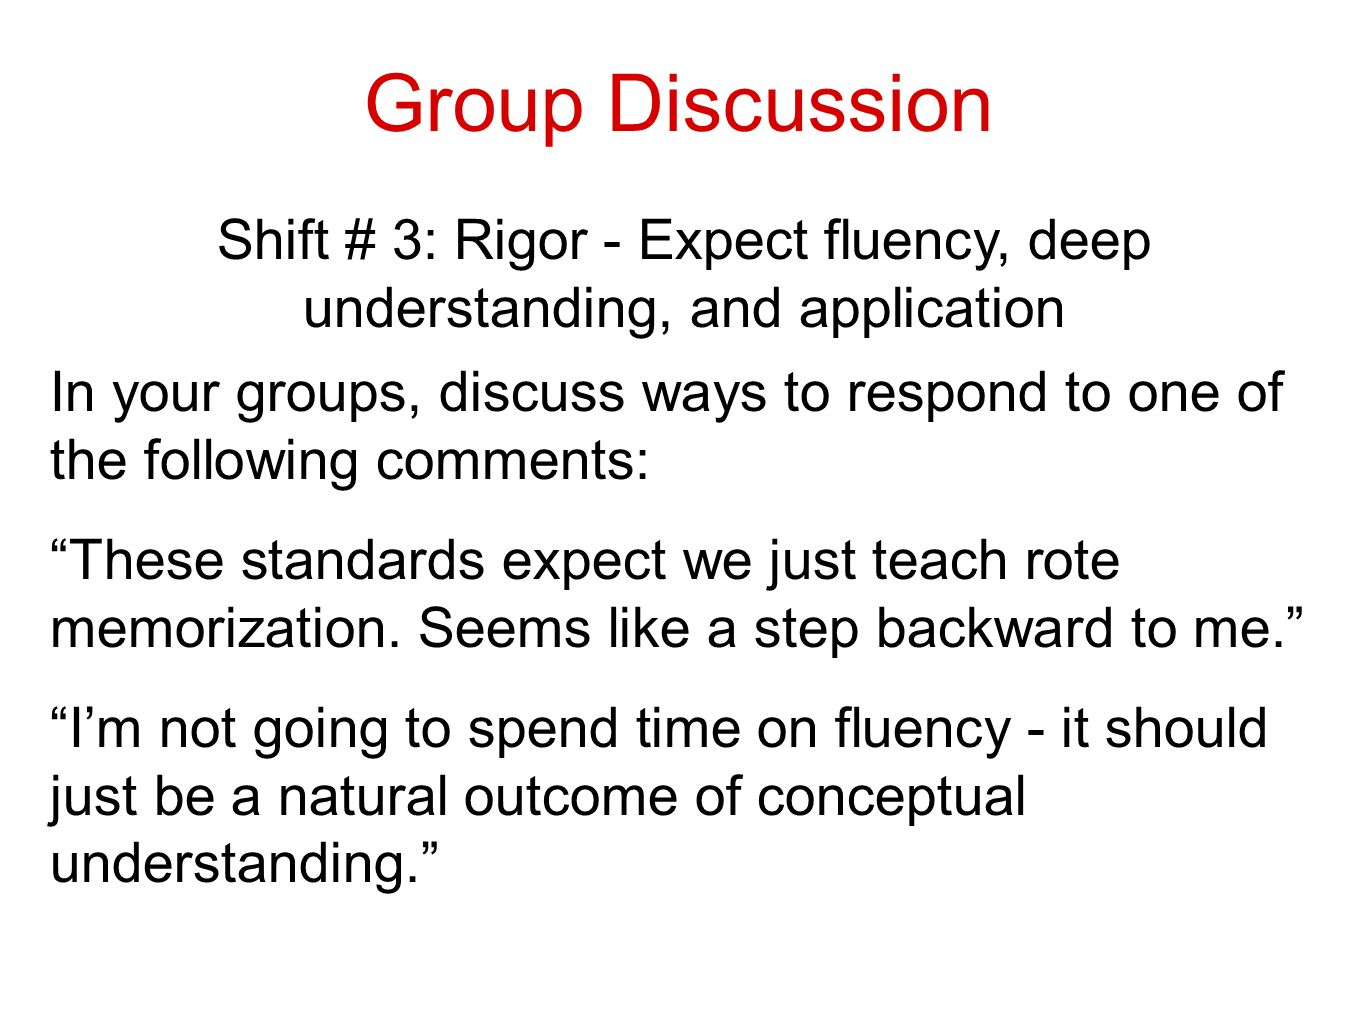 Engaging with the shift: Making a true statement Rigor = _____ + ______ + ______ This shift requires a balance of three discrete components in math instruction.